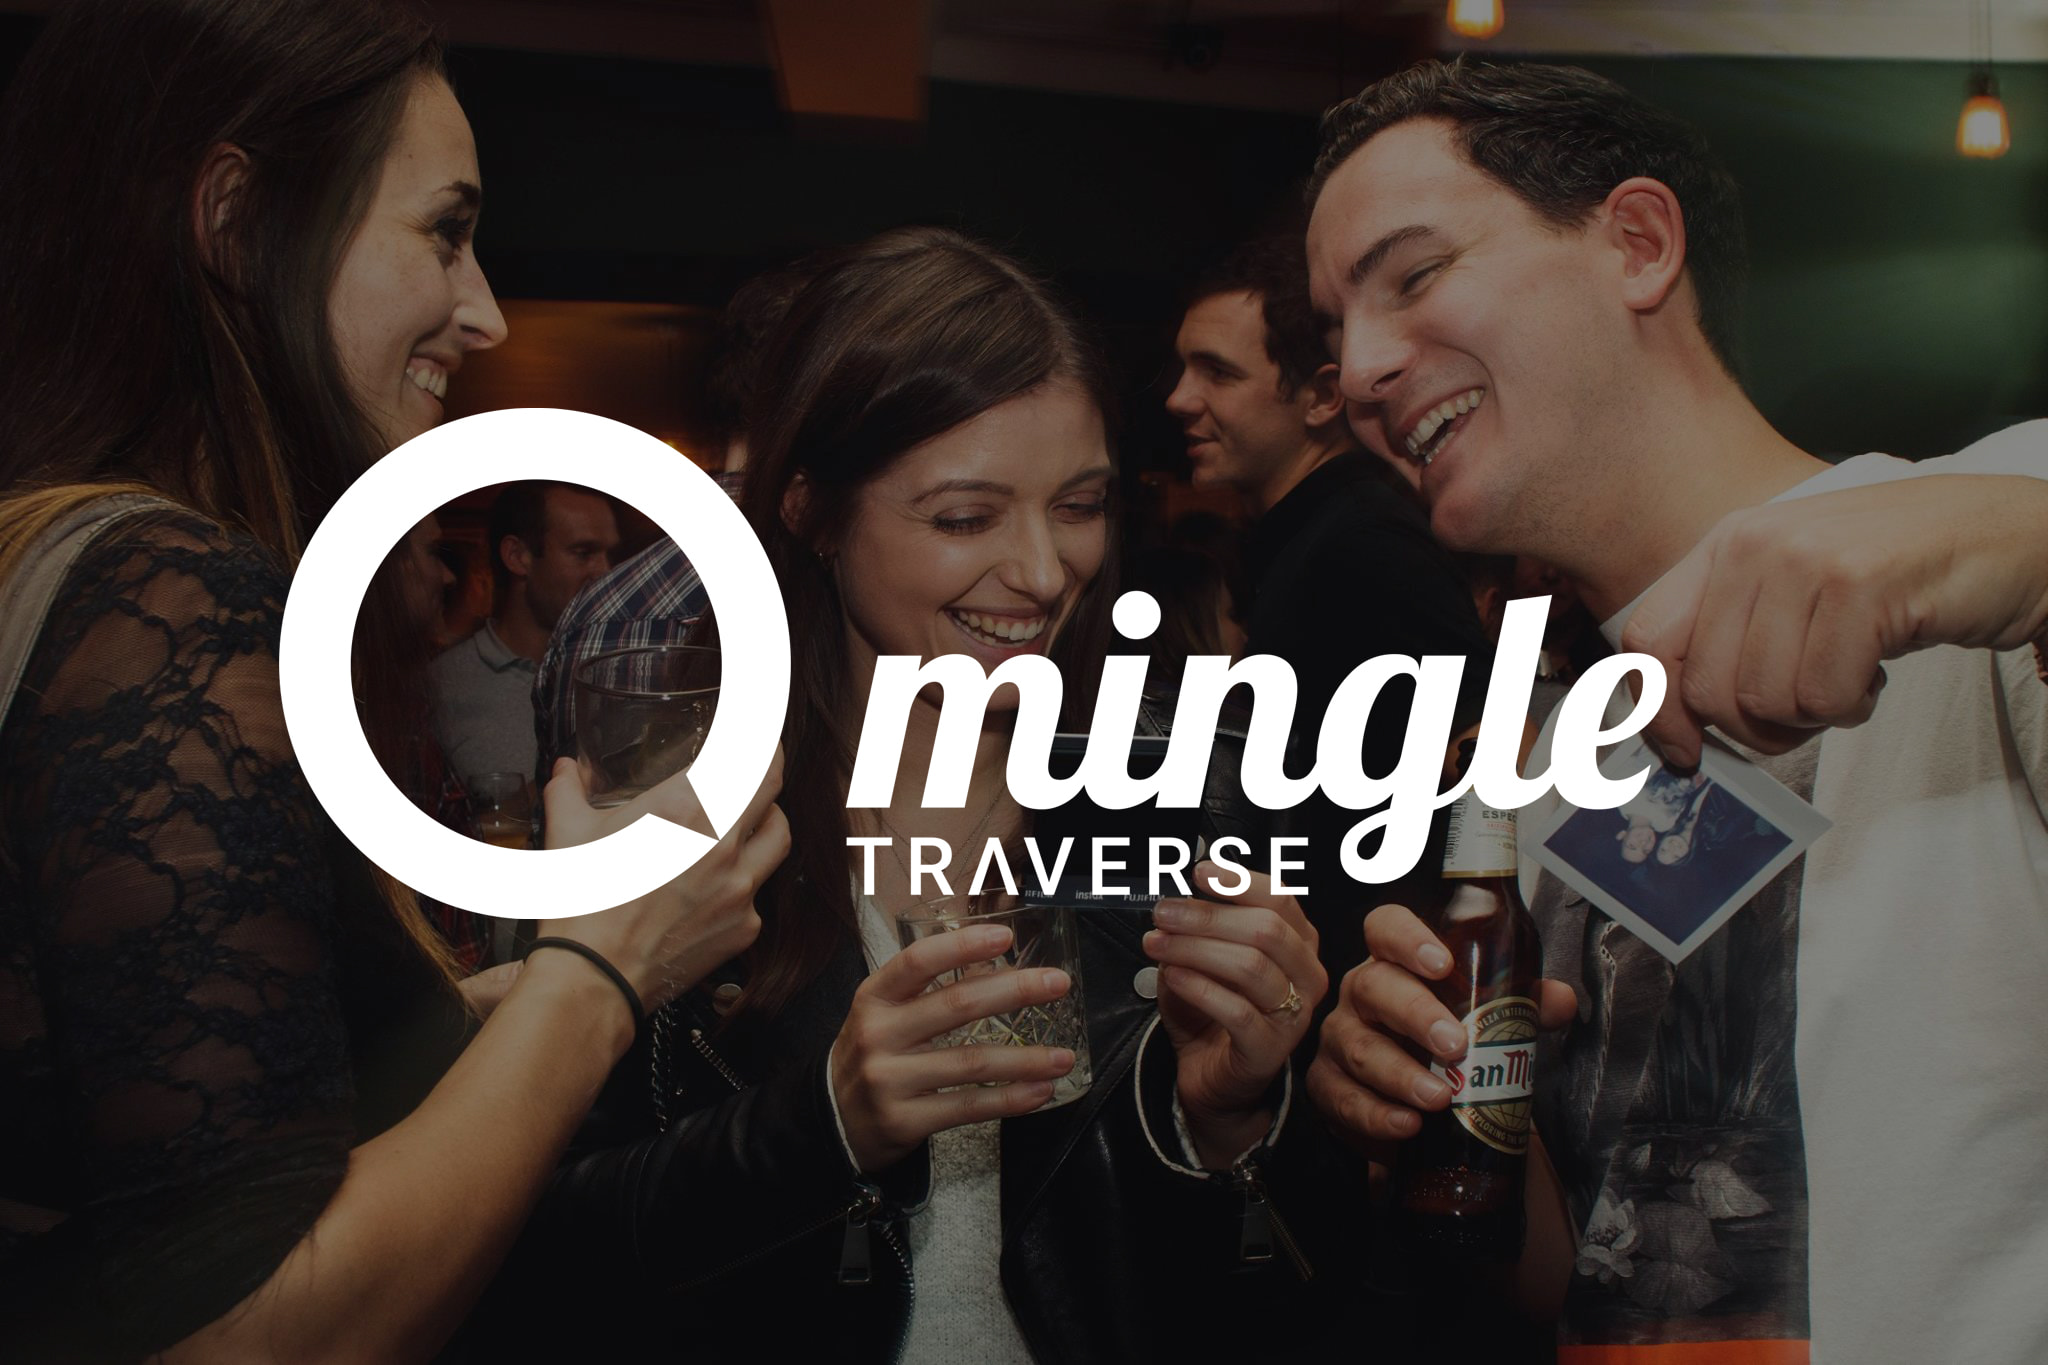 traverse mingle